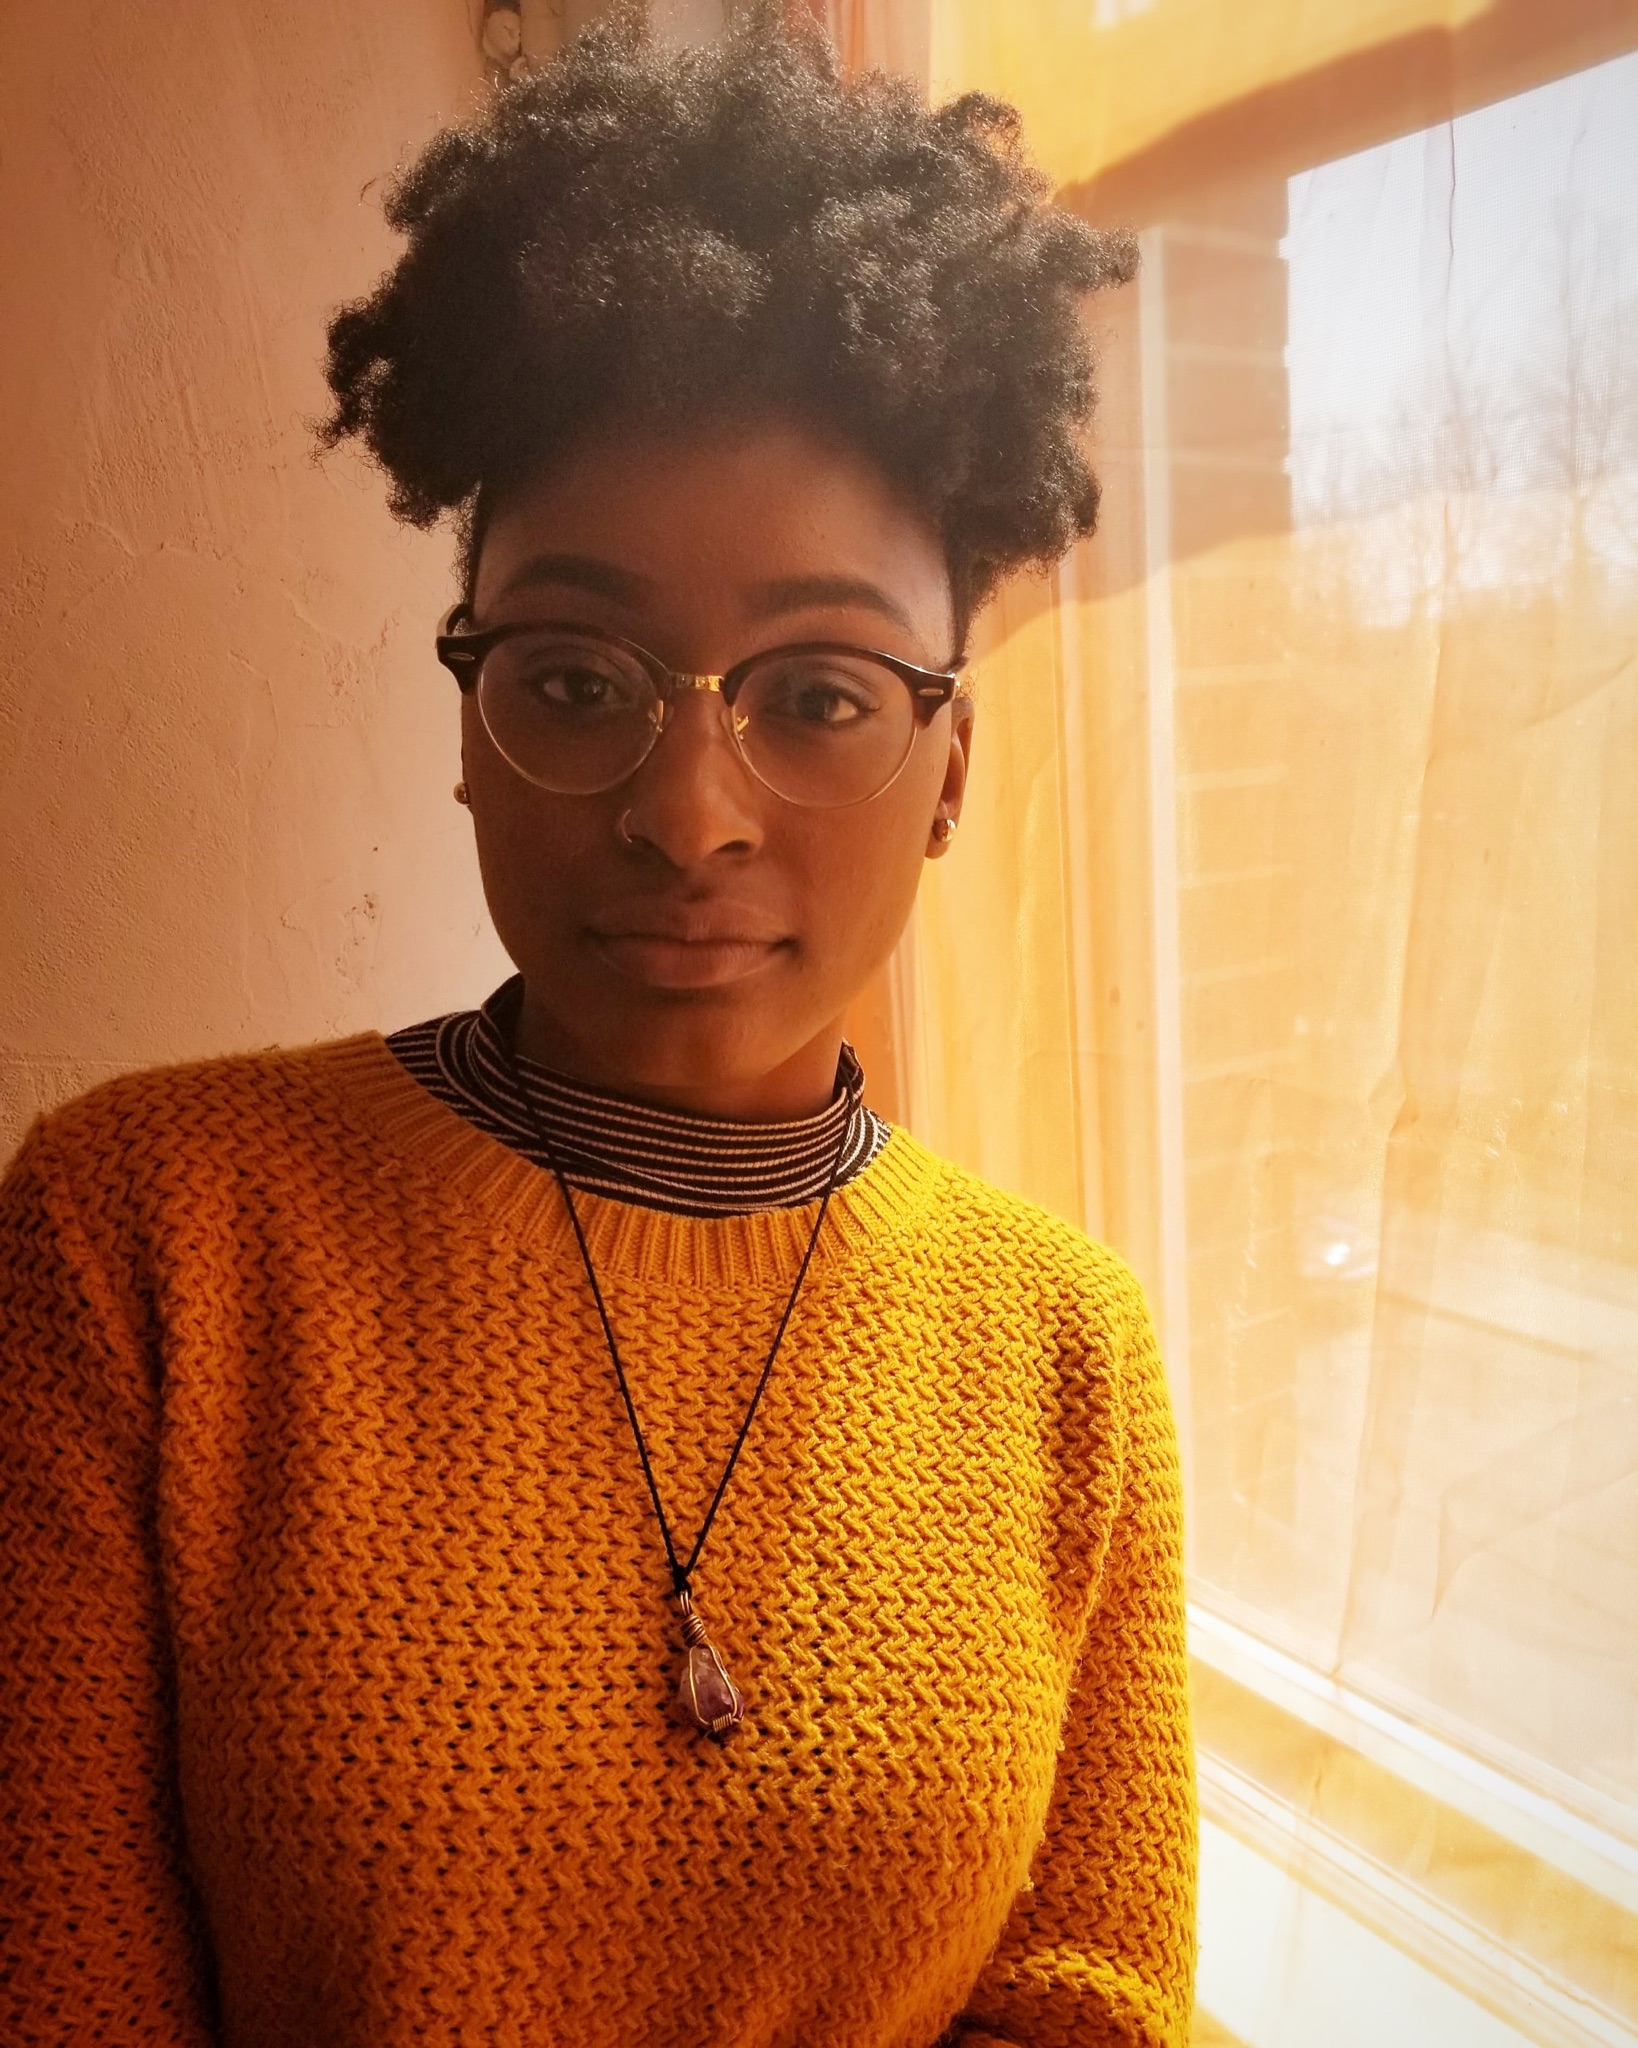 color photograph, headshot of Anika Carter in a yellow sweater leaning on a window and staring straight into the camera